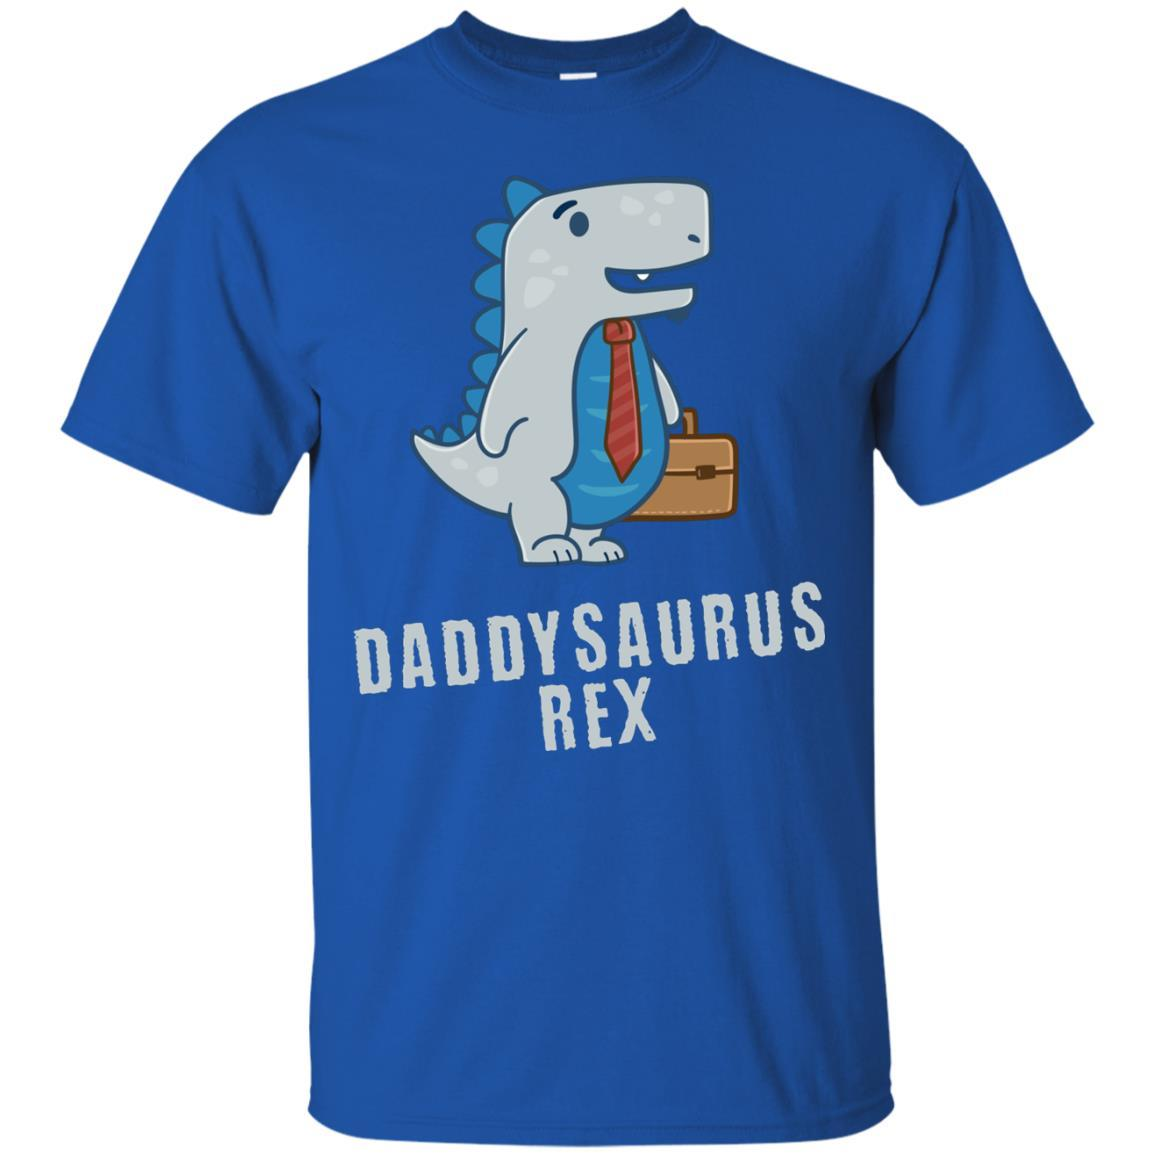 6ba567634 Daddysaurus Rex Papasaurus Funny Dinosaur Shirt for Dad Men - Alottee